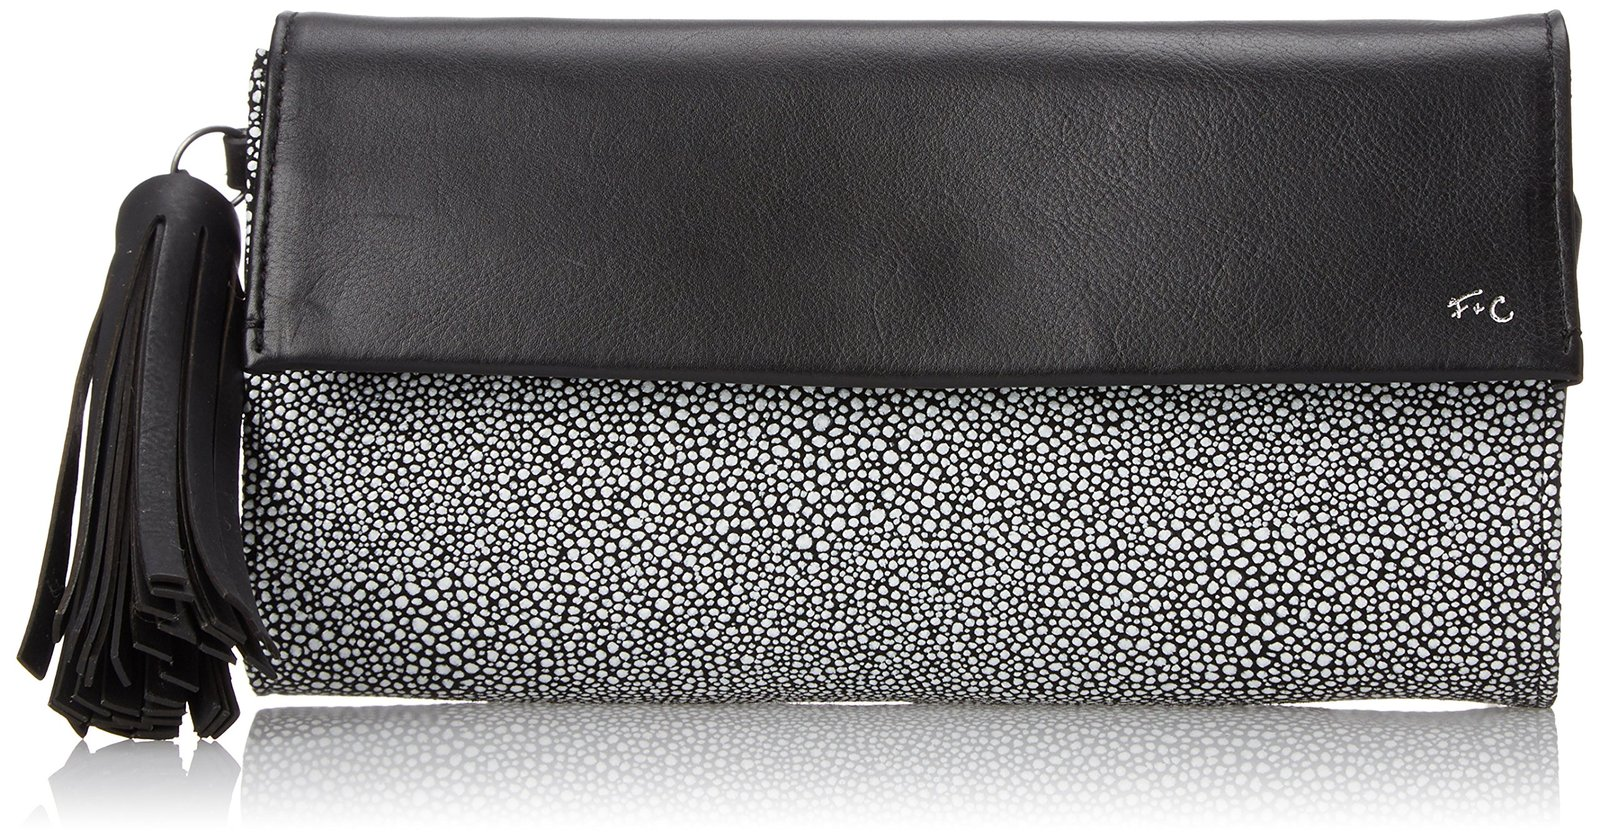 Foley + Corinna Vesta Clutch Cross Body Bag, Black Combo, One Size